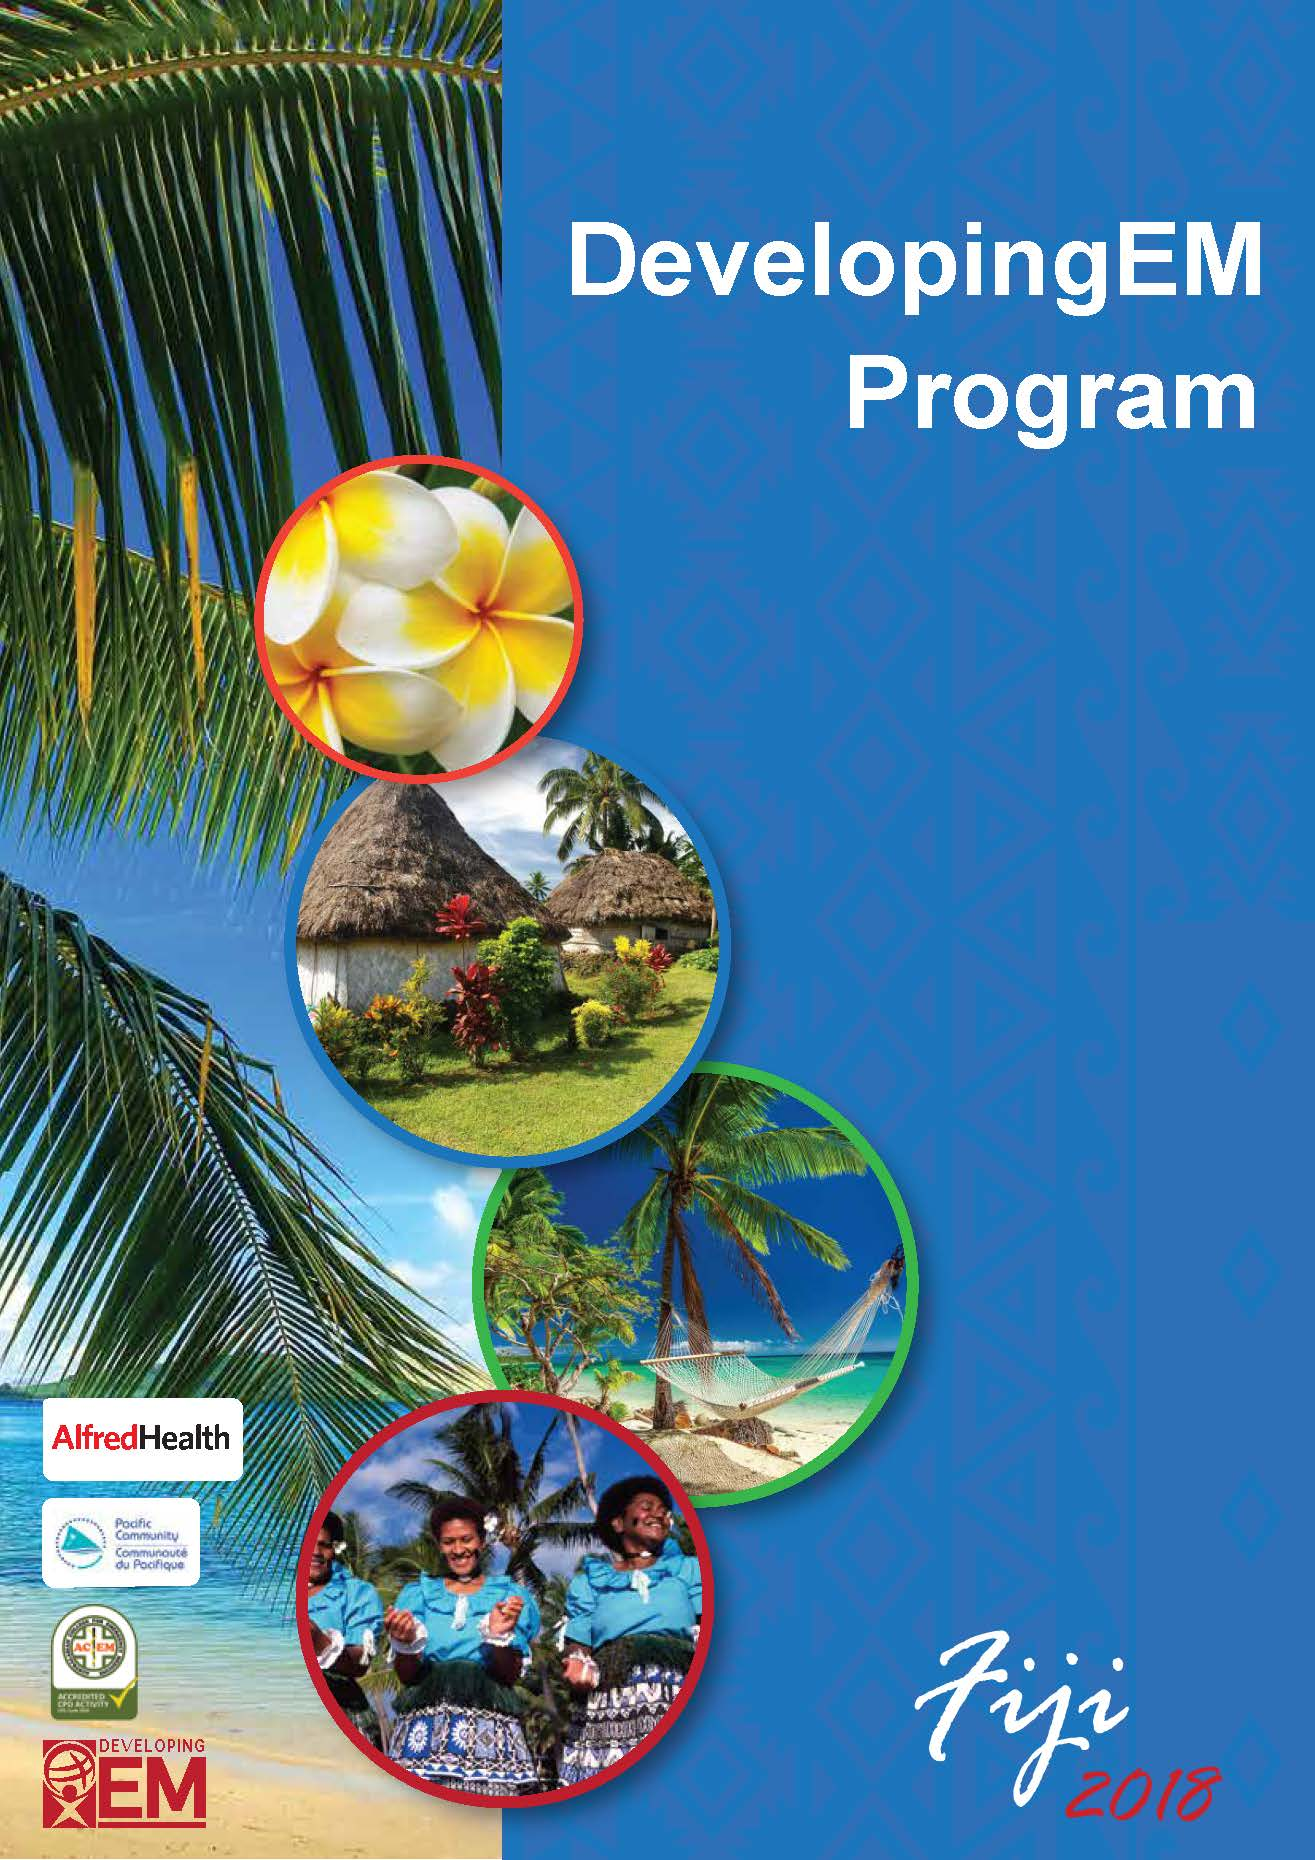 DEM Program cover